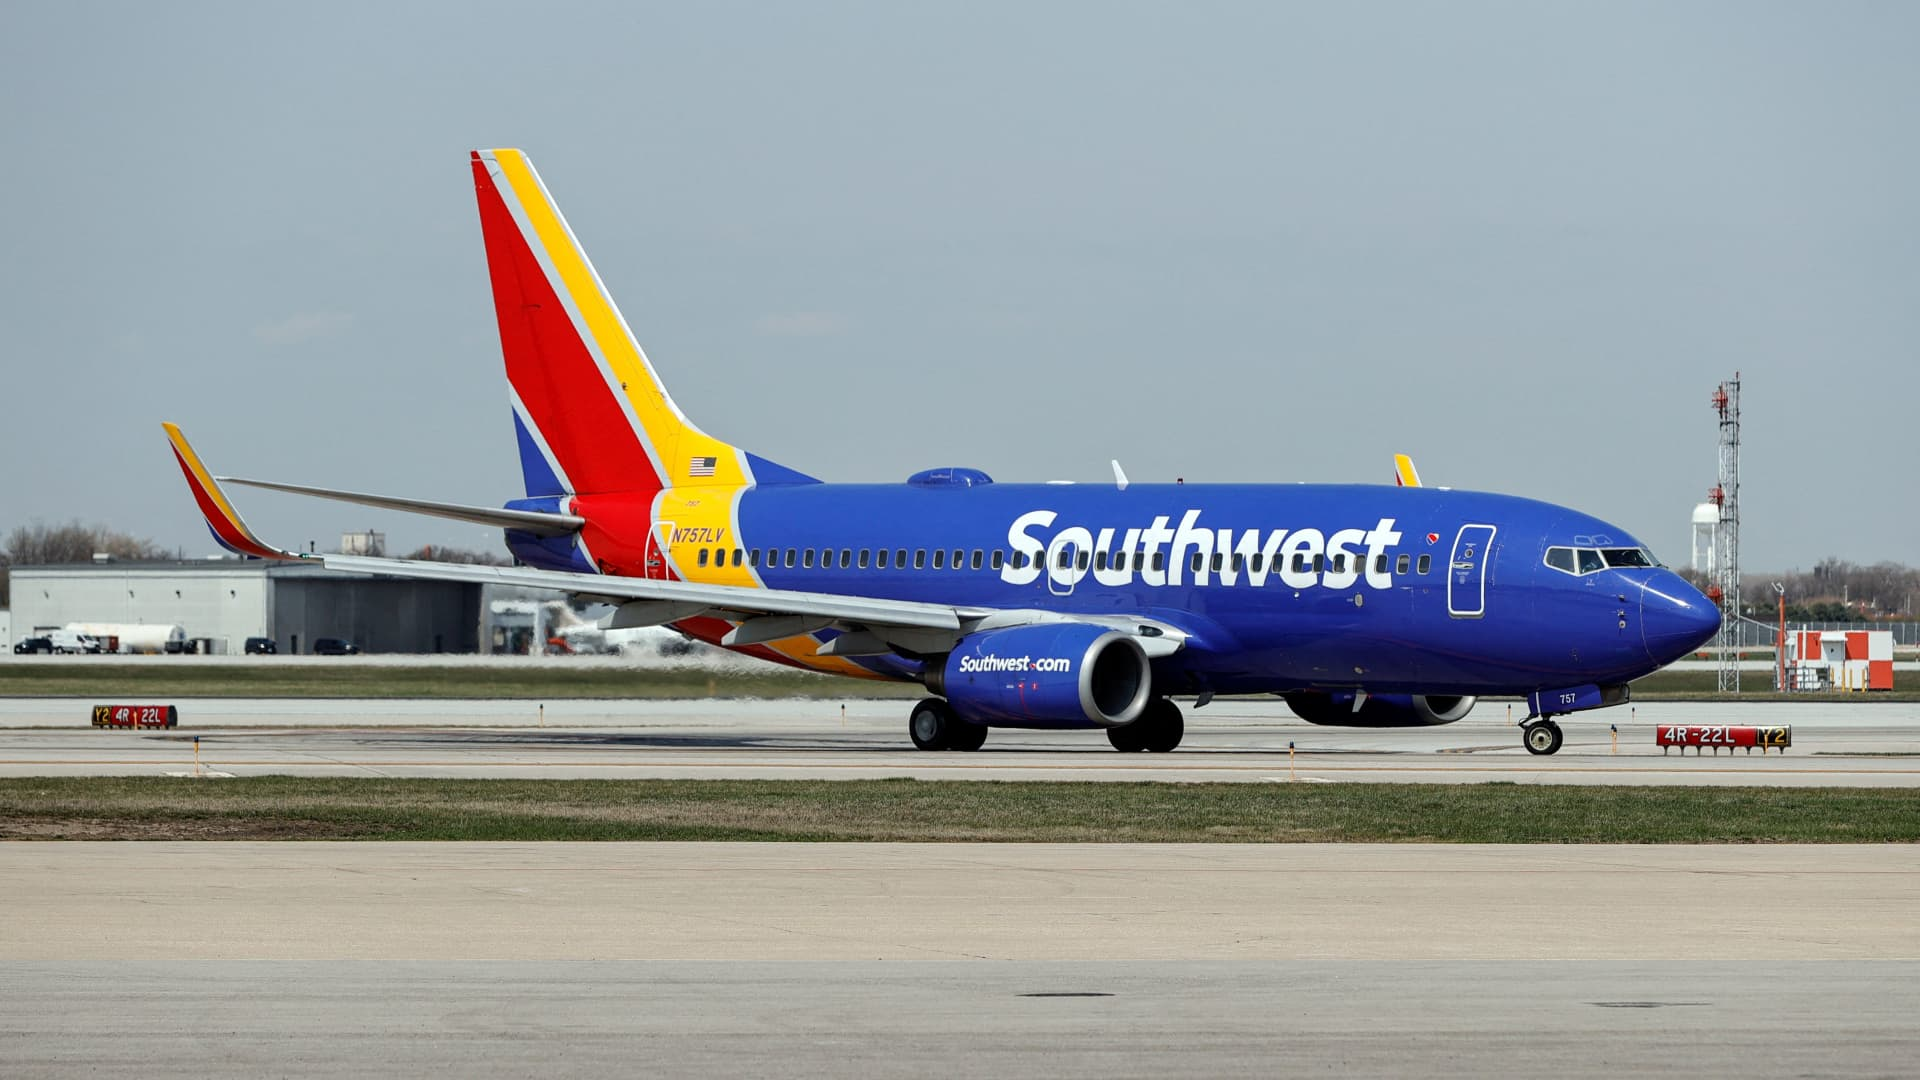 A Southwest Airlines Boeing 737-7H4 jet taxis to the gate after landing at Midway International Airport in Chicago, Illinois, on April 6, 2021.